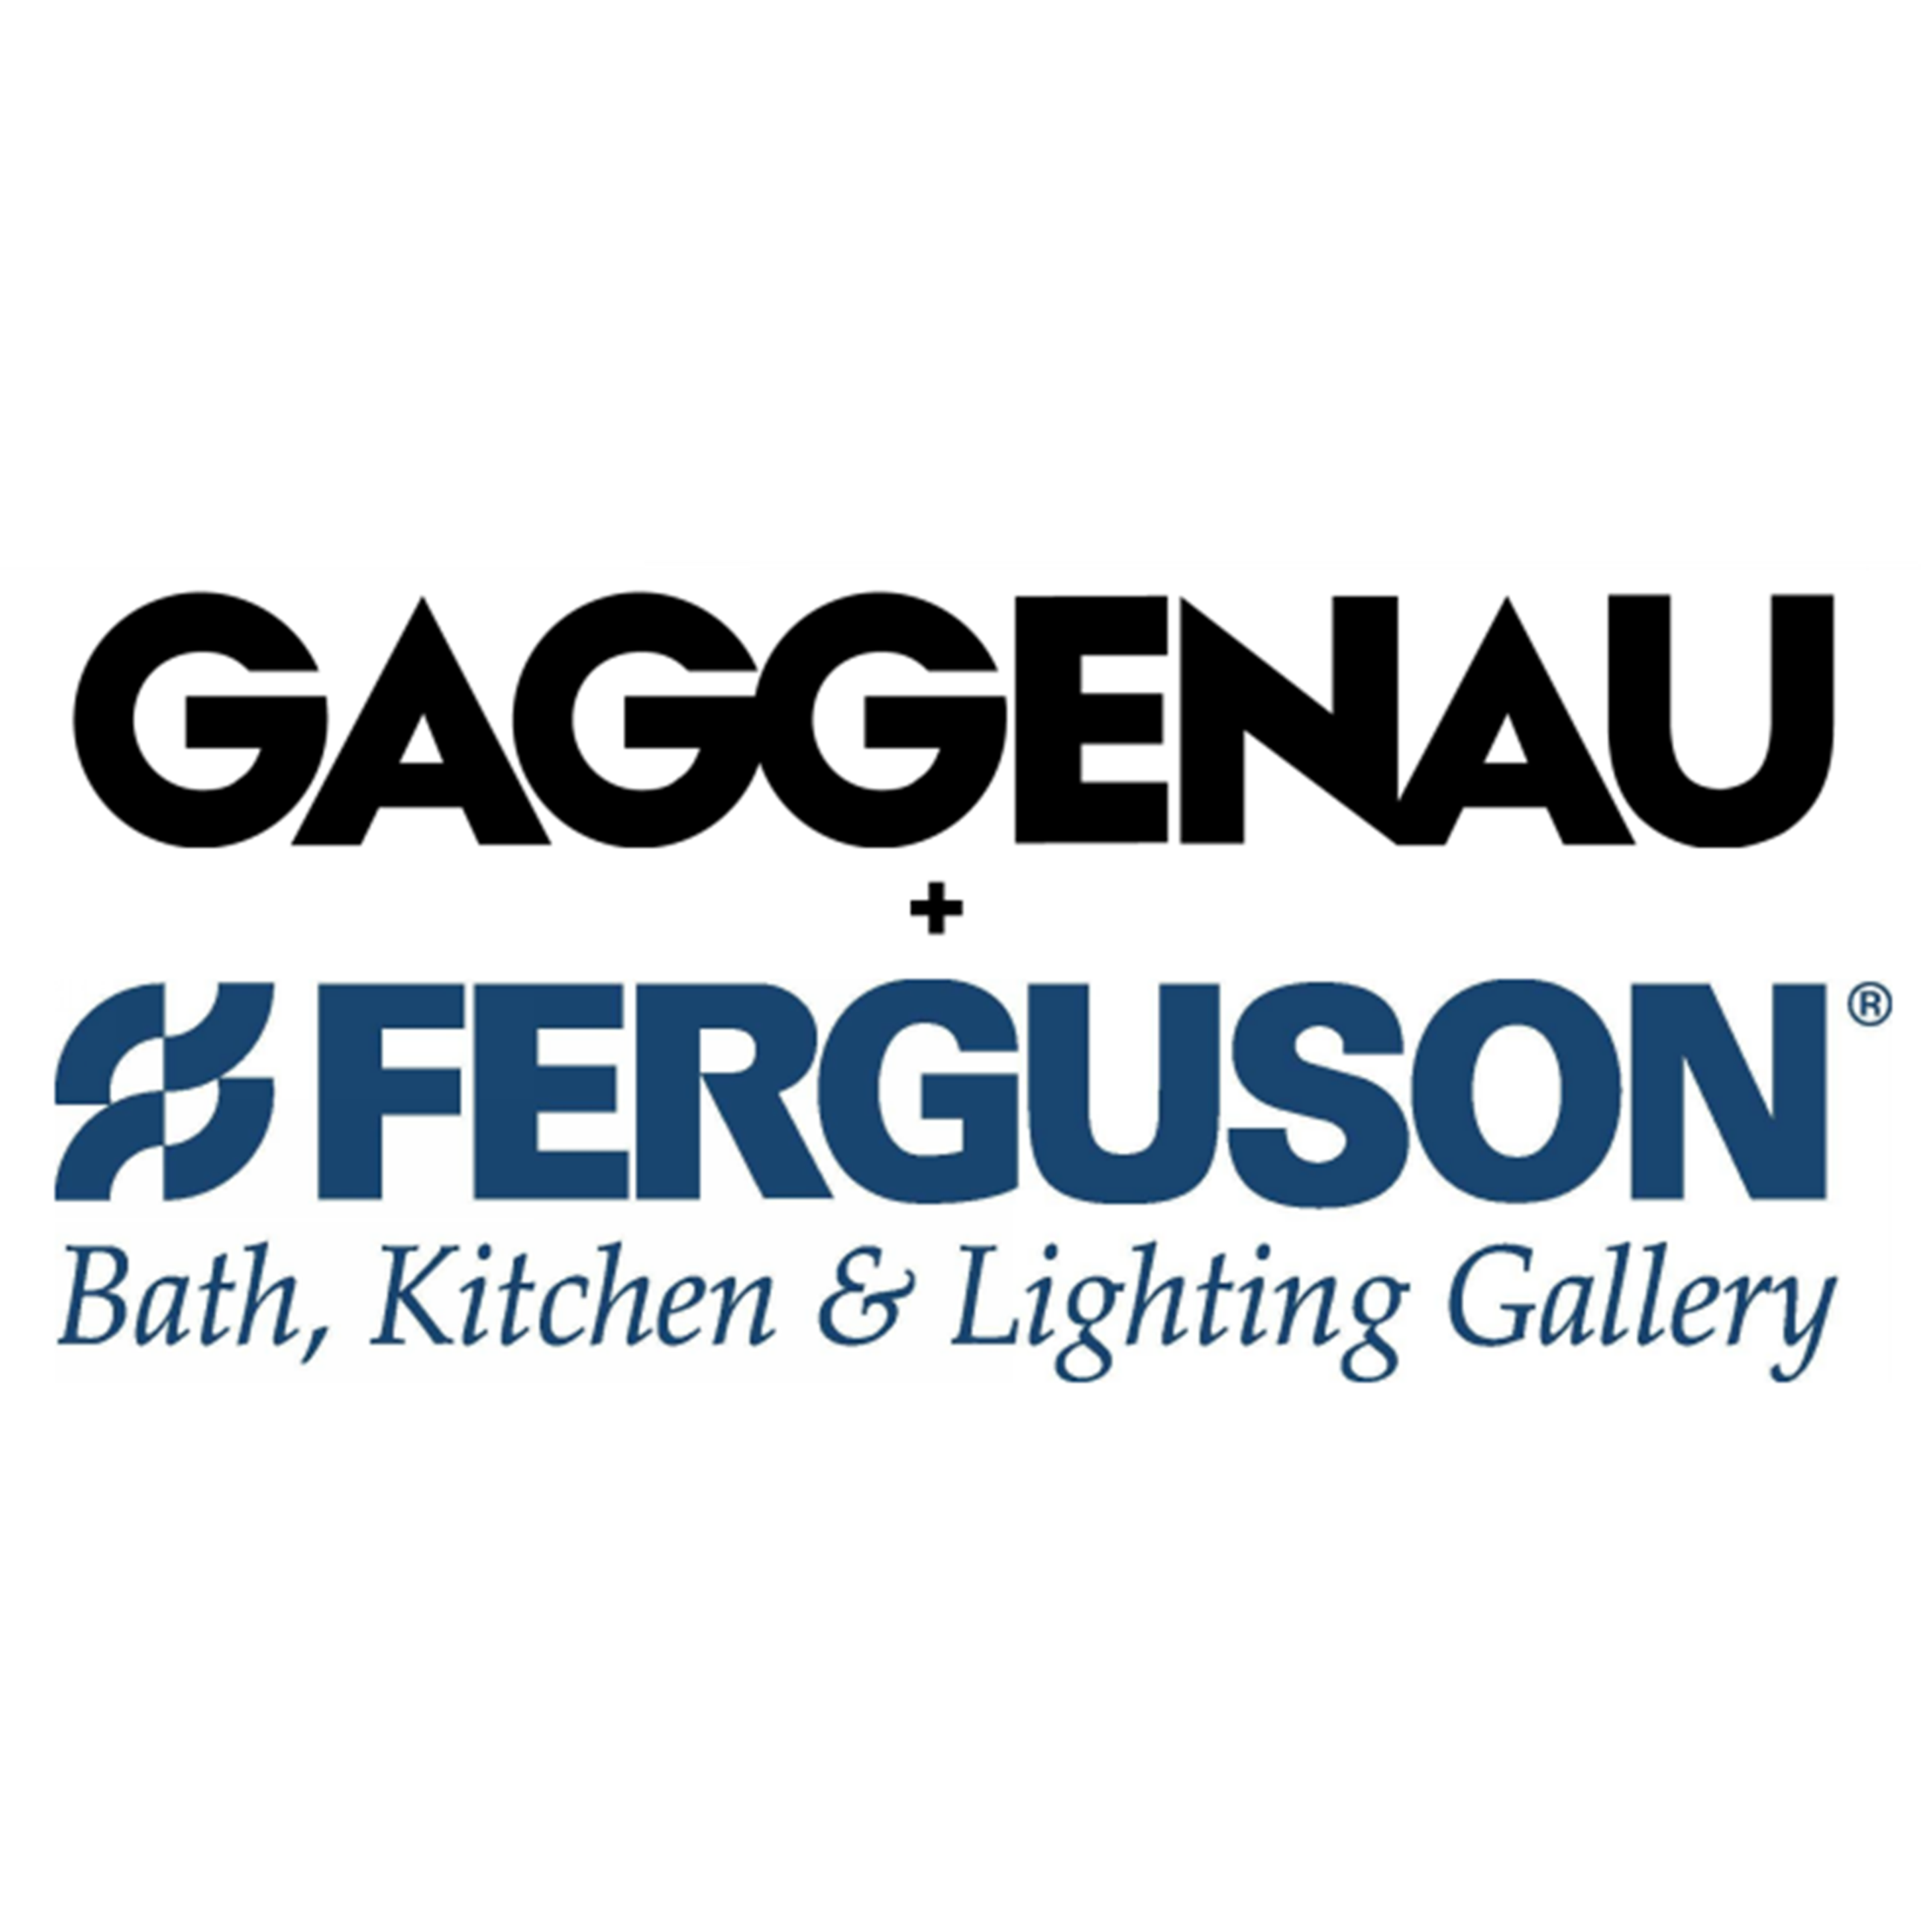 Ferguson Bath Kitchen & Lighting Gallery logo